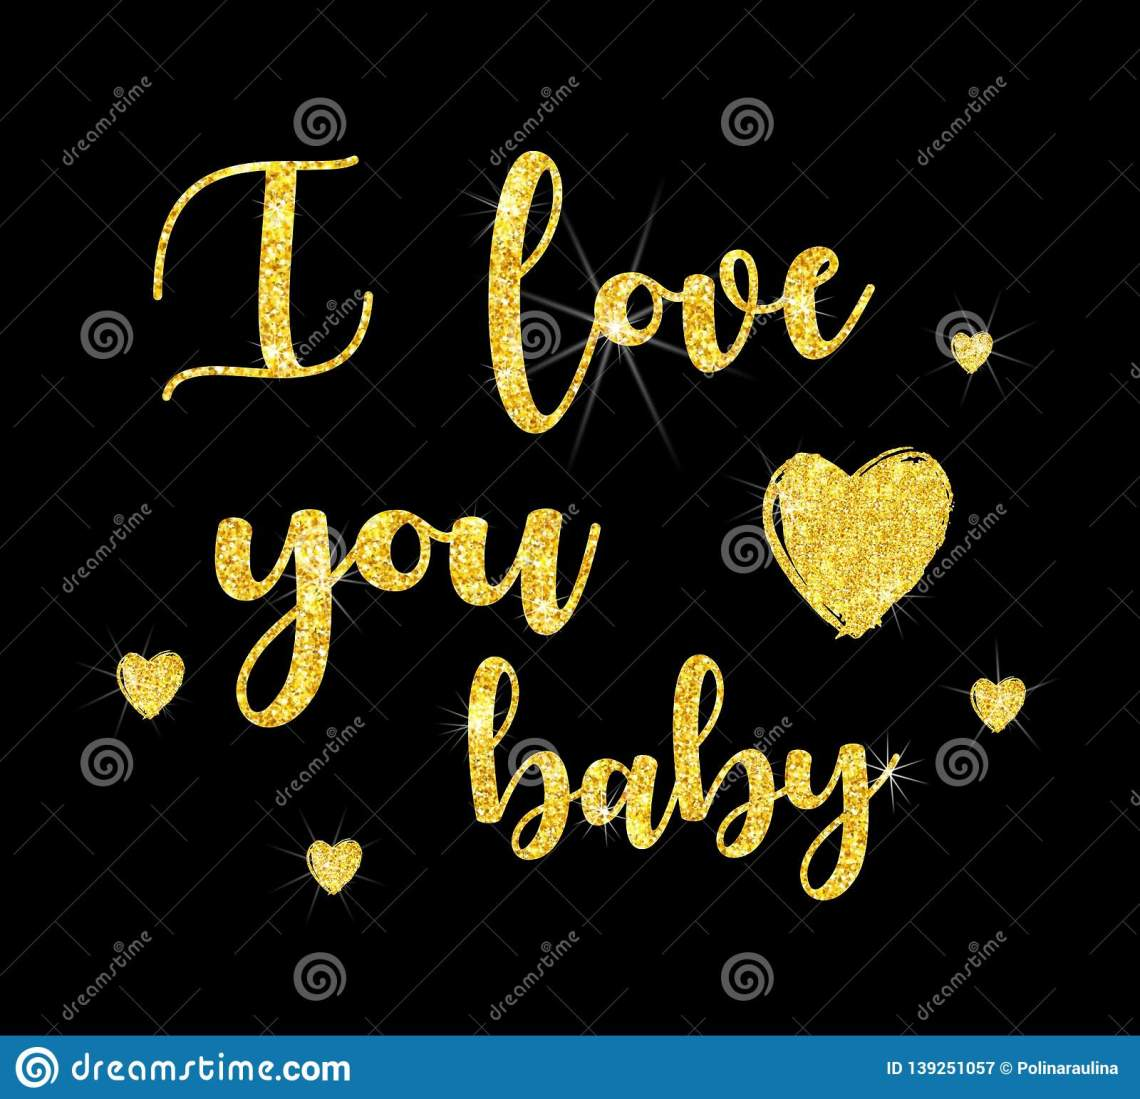 Download I Love You Baby .Glitter Font Lettering. Stock Image ...